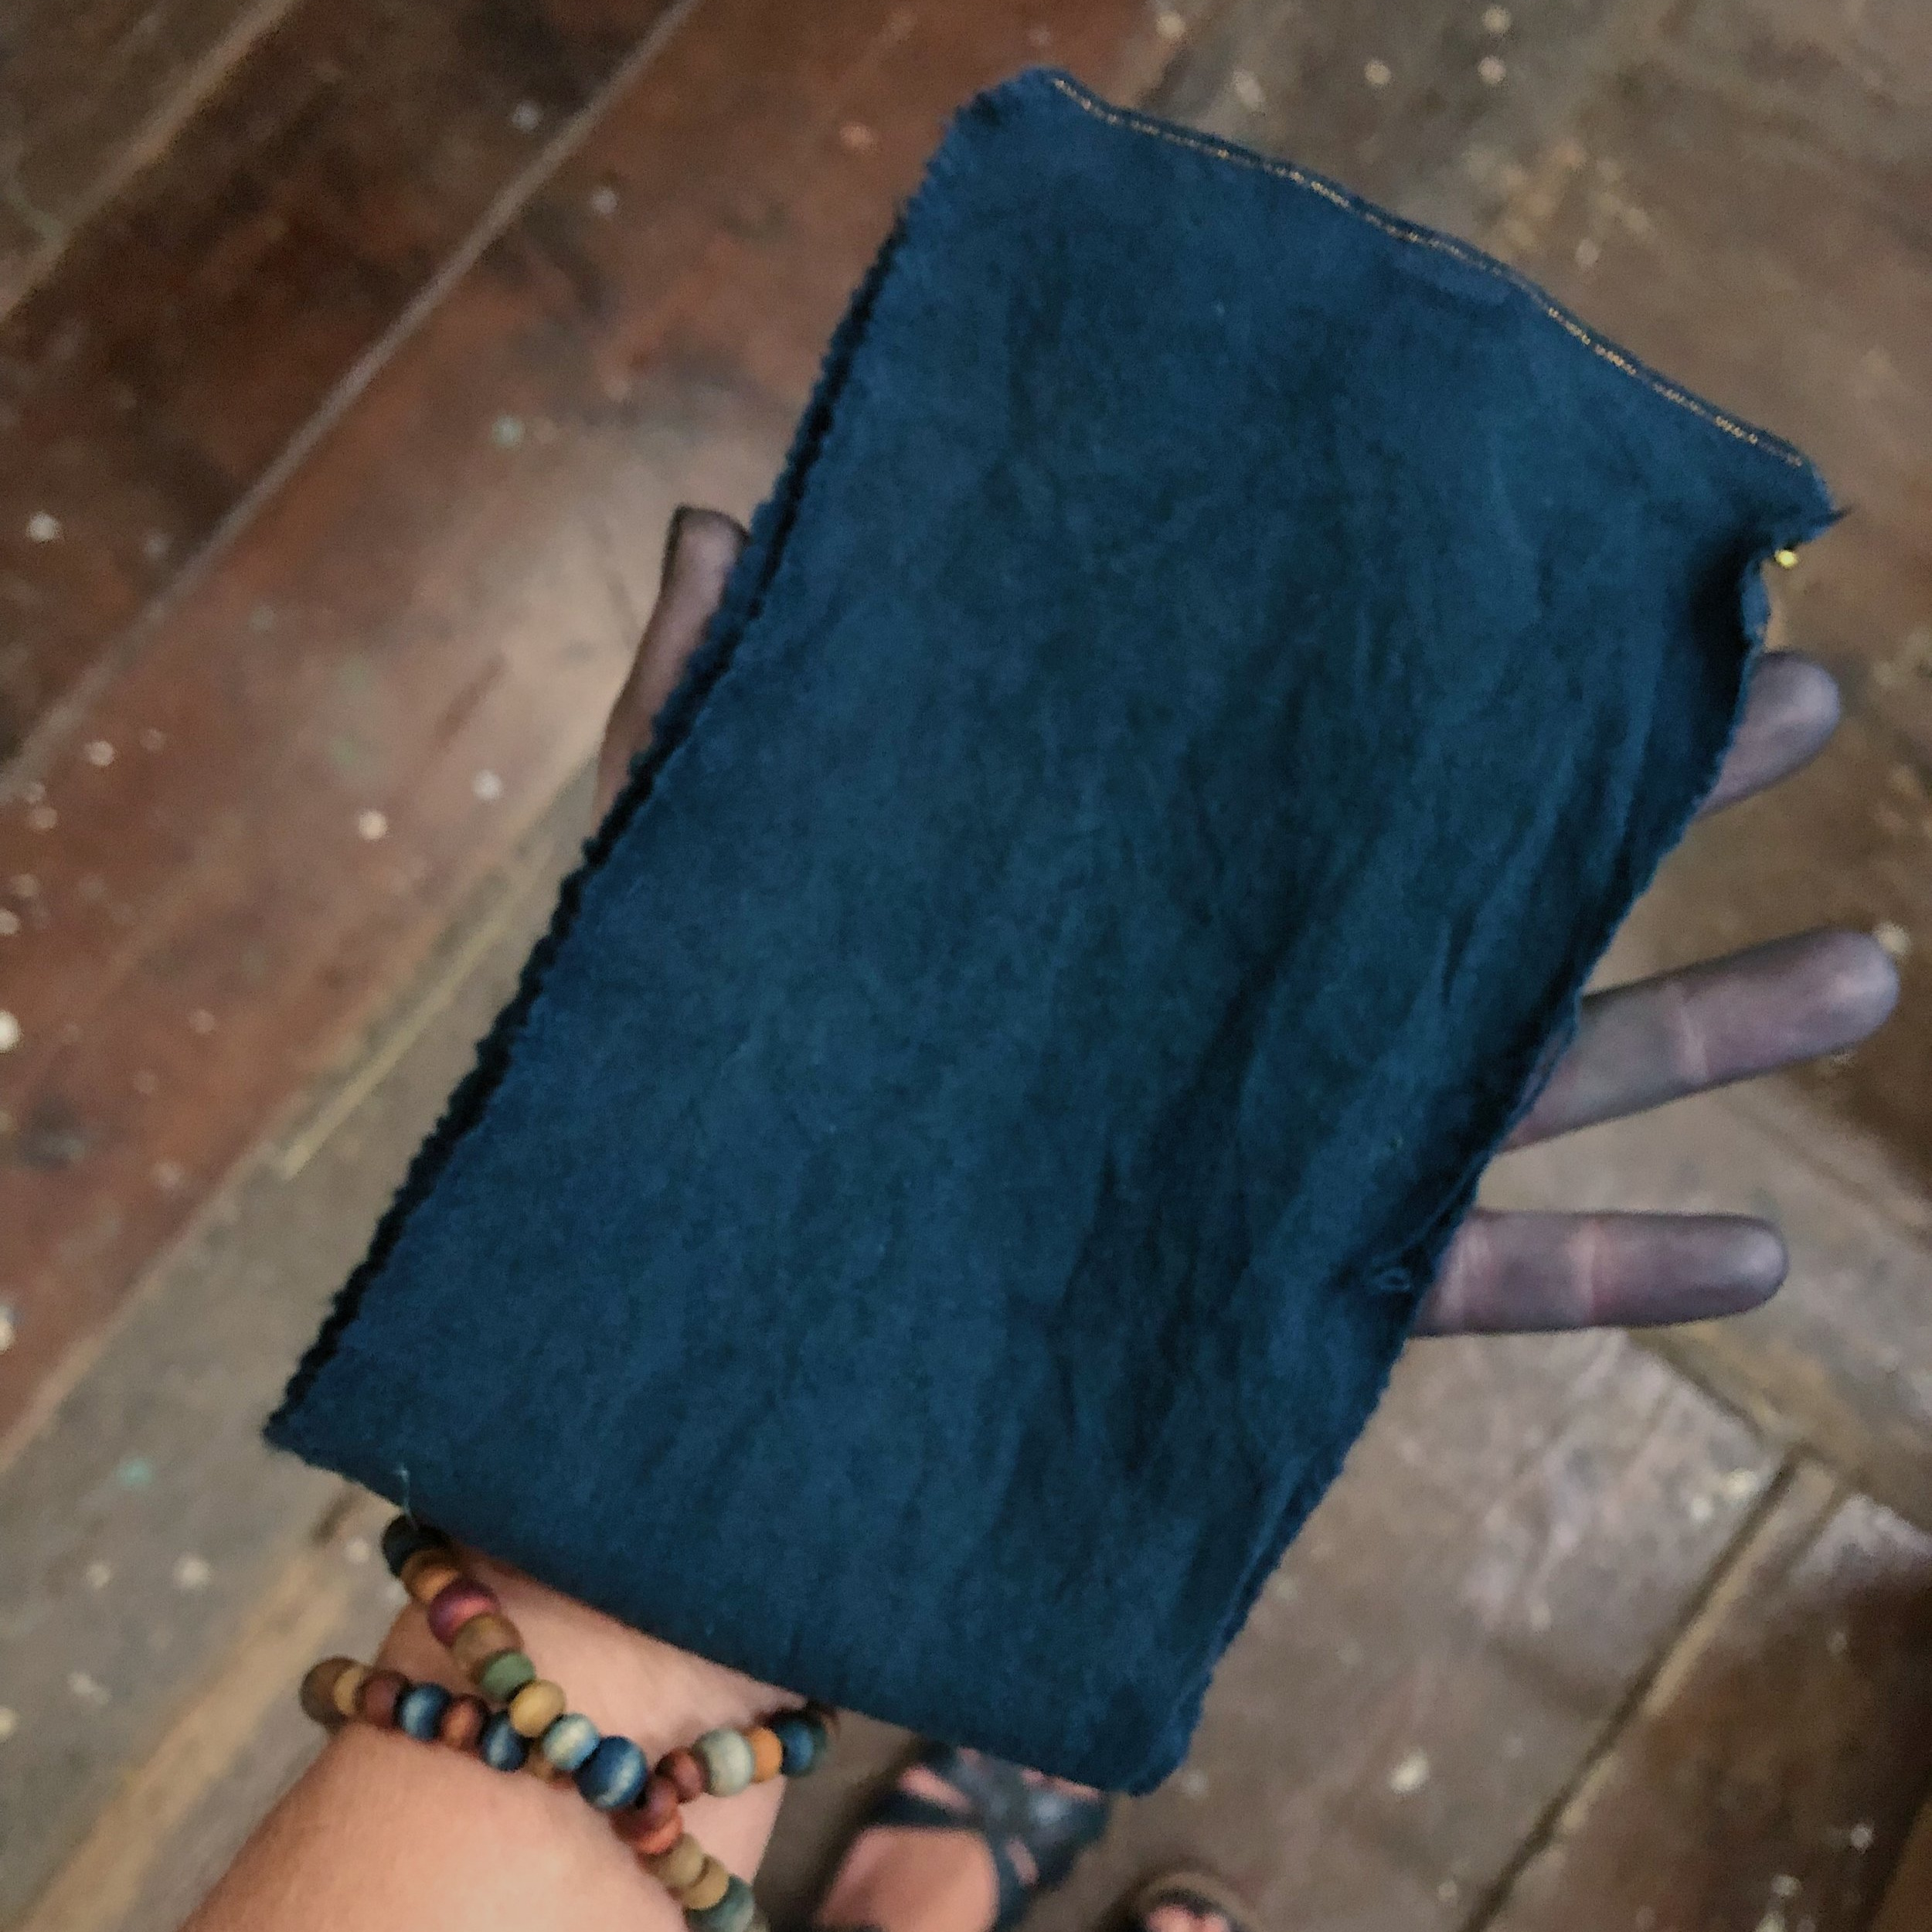 after 5 salt rub fresh indigo sessions, a final rinse & dry, the wool is a dark blue navy color